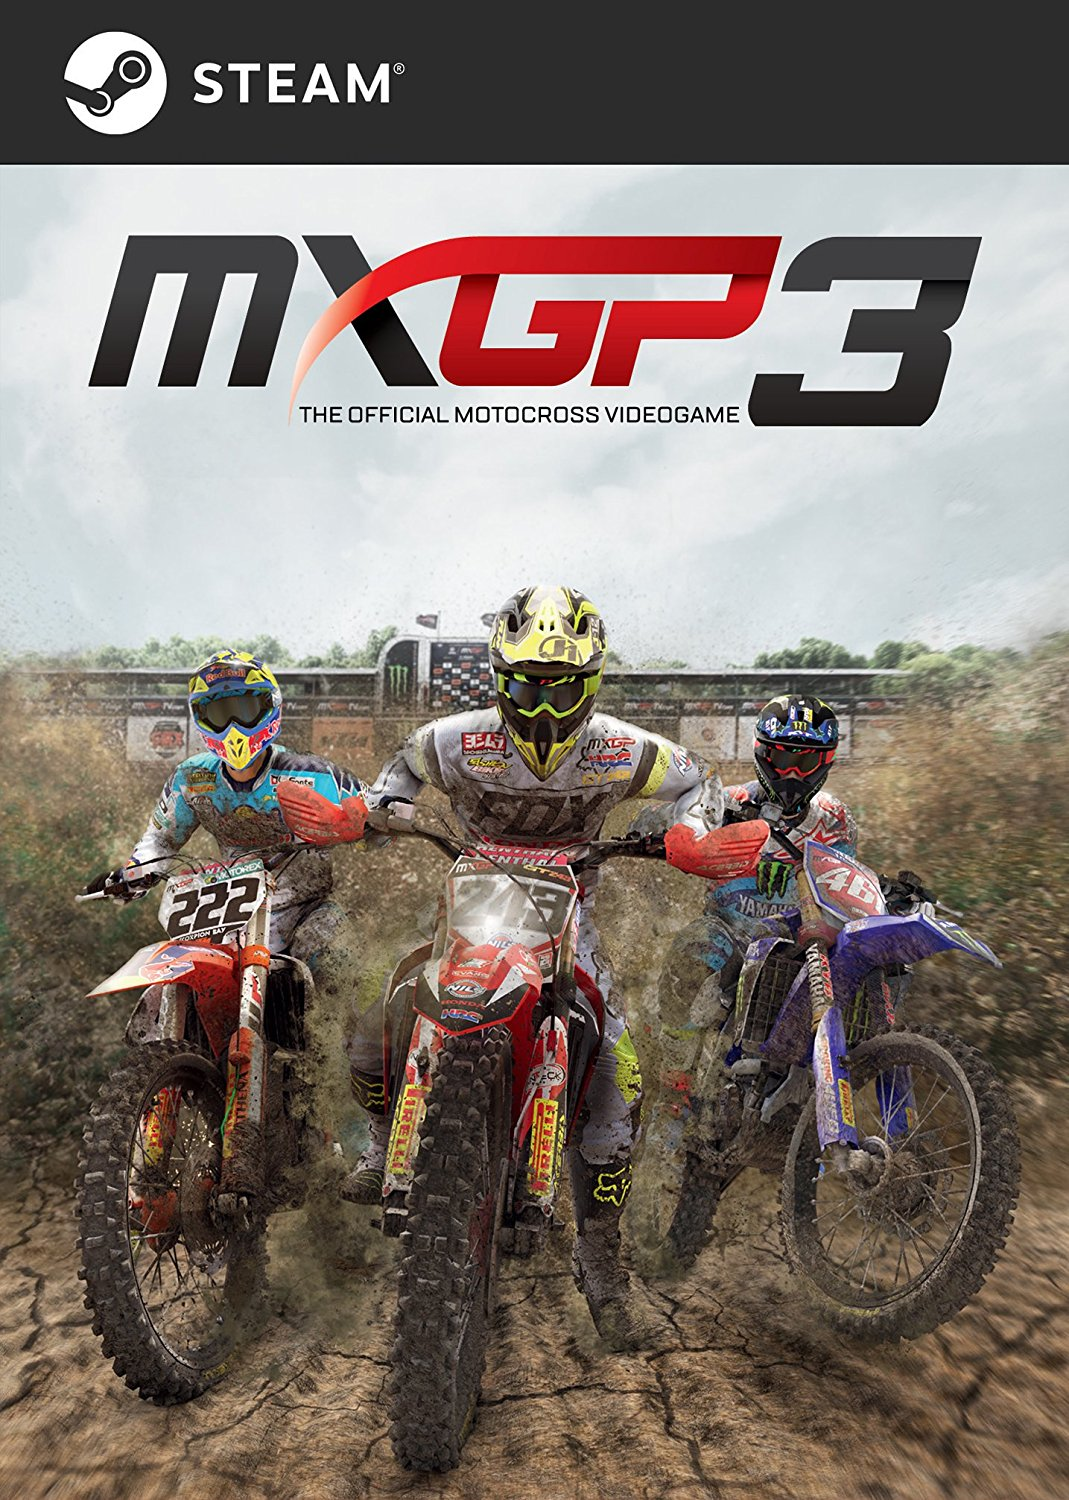 http://img5.downloadha.com/hosein/Game/May%202017/30/MXGP3-The-Official-Motocross-Videogame-pc-cover-large.jpg